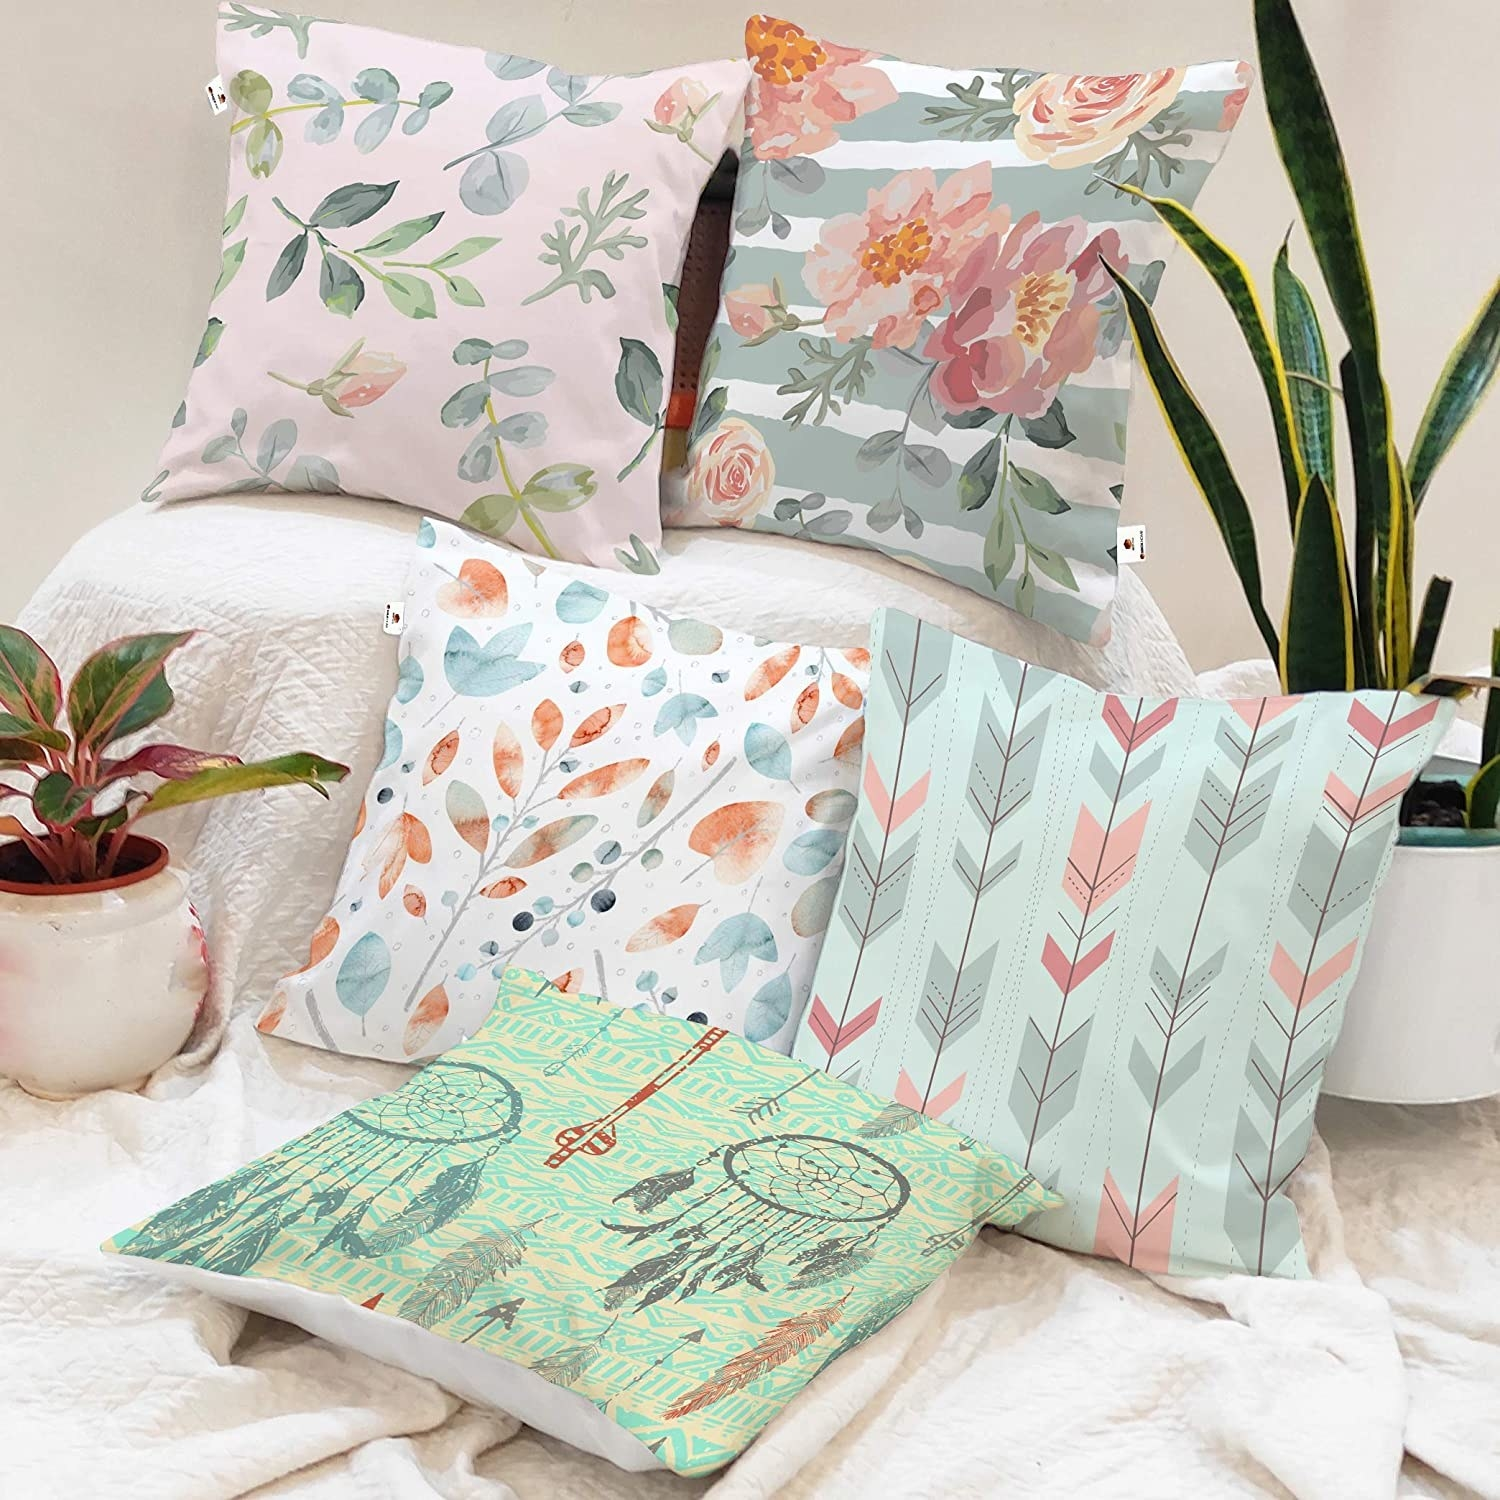 5 cotton cushion covers with prints that look like watercolour paintings in a light colourpalette